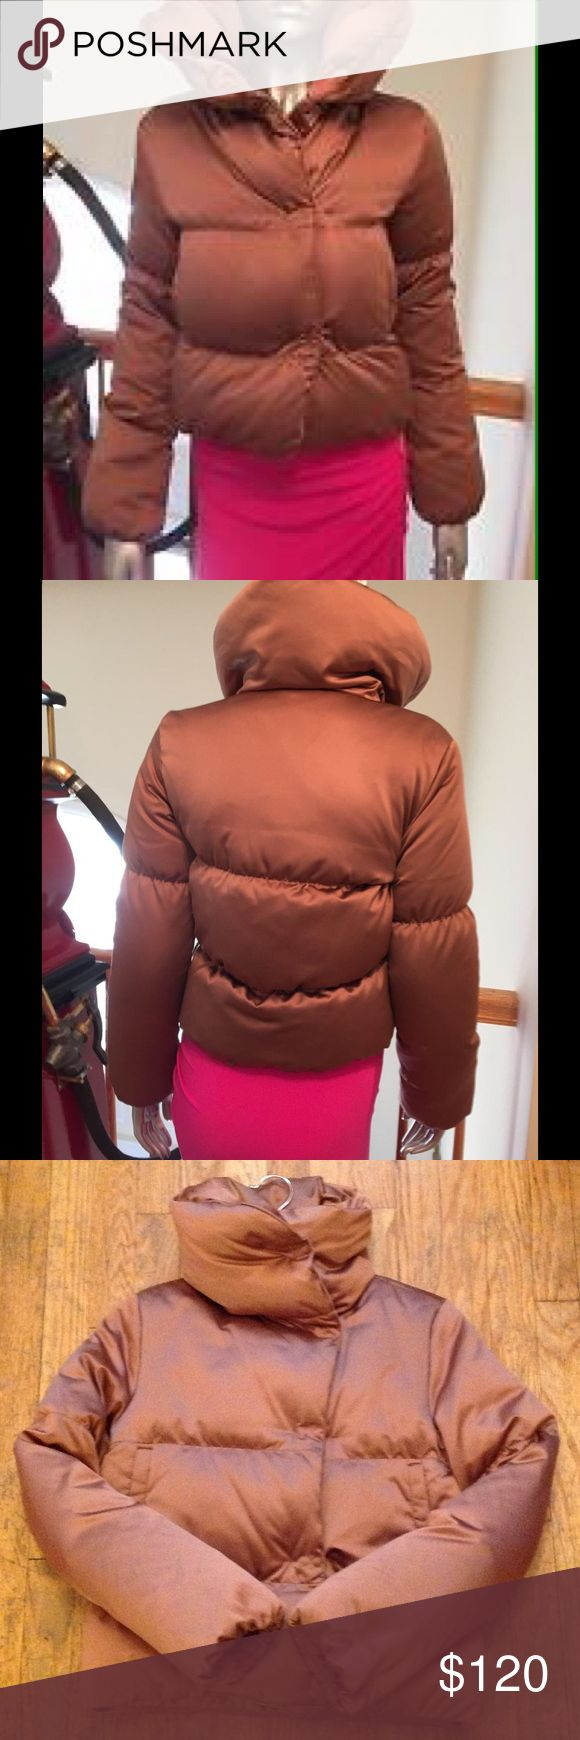 Theory Down KEILLY Spritzer  Puffer Jacket awesome Theory Down puffer Jacket size small   Snap closures. Pretty close to perfect condition. Has a tiny tiny pull at the neckline which is covered up. Retails for $415 plus tax.  Name of the Jacket is the KEILLY Spritzer. Deep salmonella n pink color.  Please ask any questions. PRICE is FIRM.  It's on eBay for $199. Insulated with 75% Down. I moved to Florida no need any longer.  It's truly an awesome Jacket and keeps you warm while still 👀 NG…